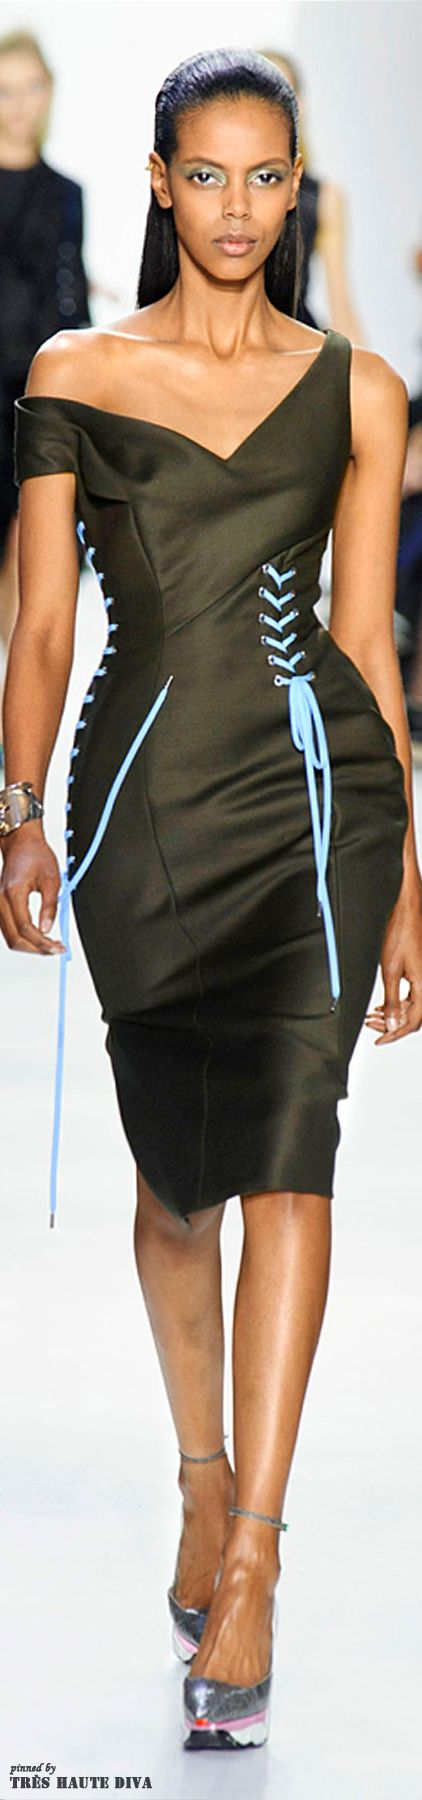 Paris Fashion Week Christian Dior Fall 2014 |